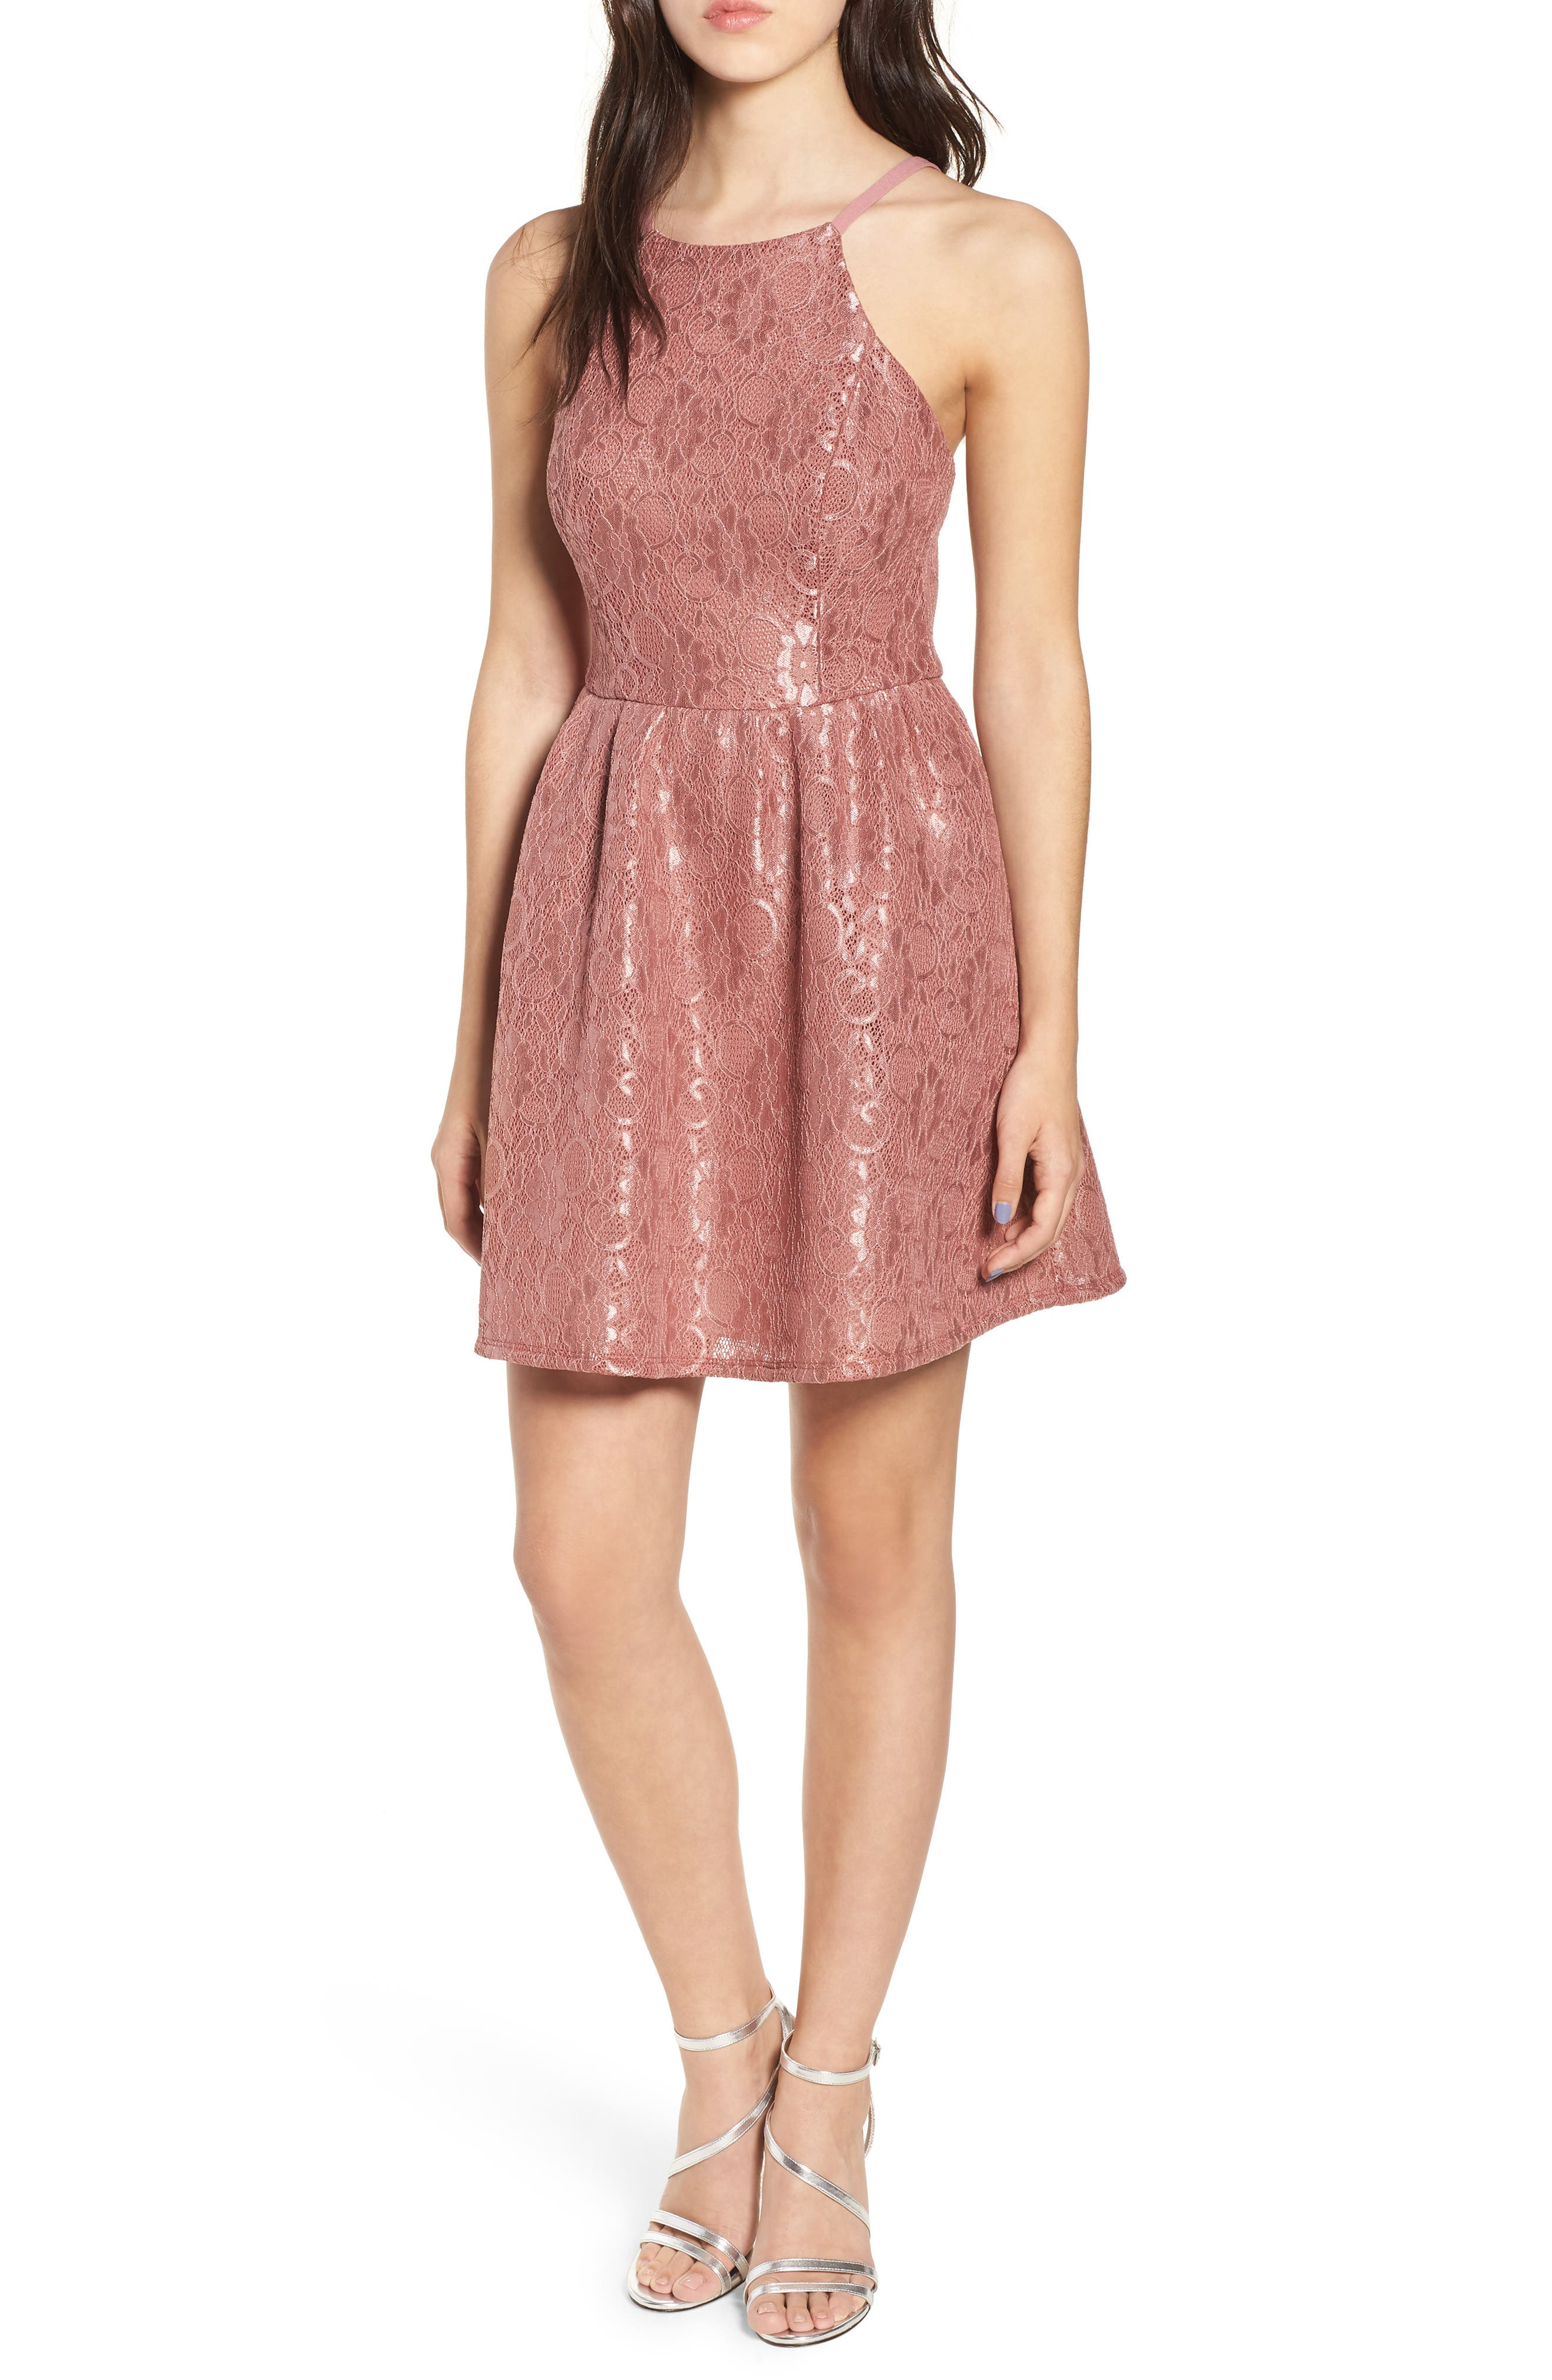 Lace Halter Low Back Party Dress,                         Main,                         color, New Mauve